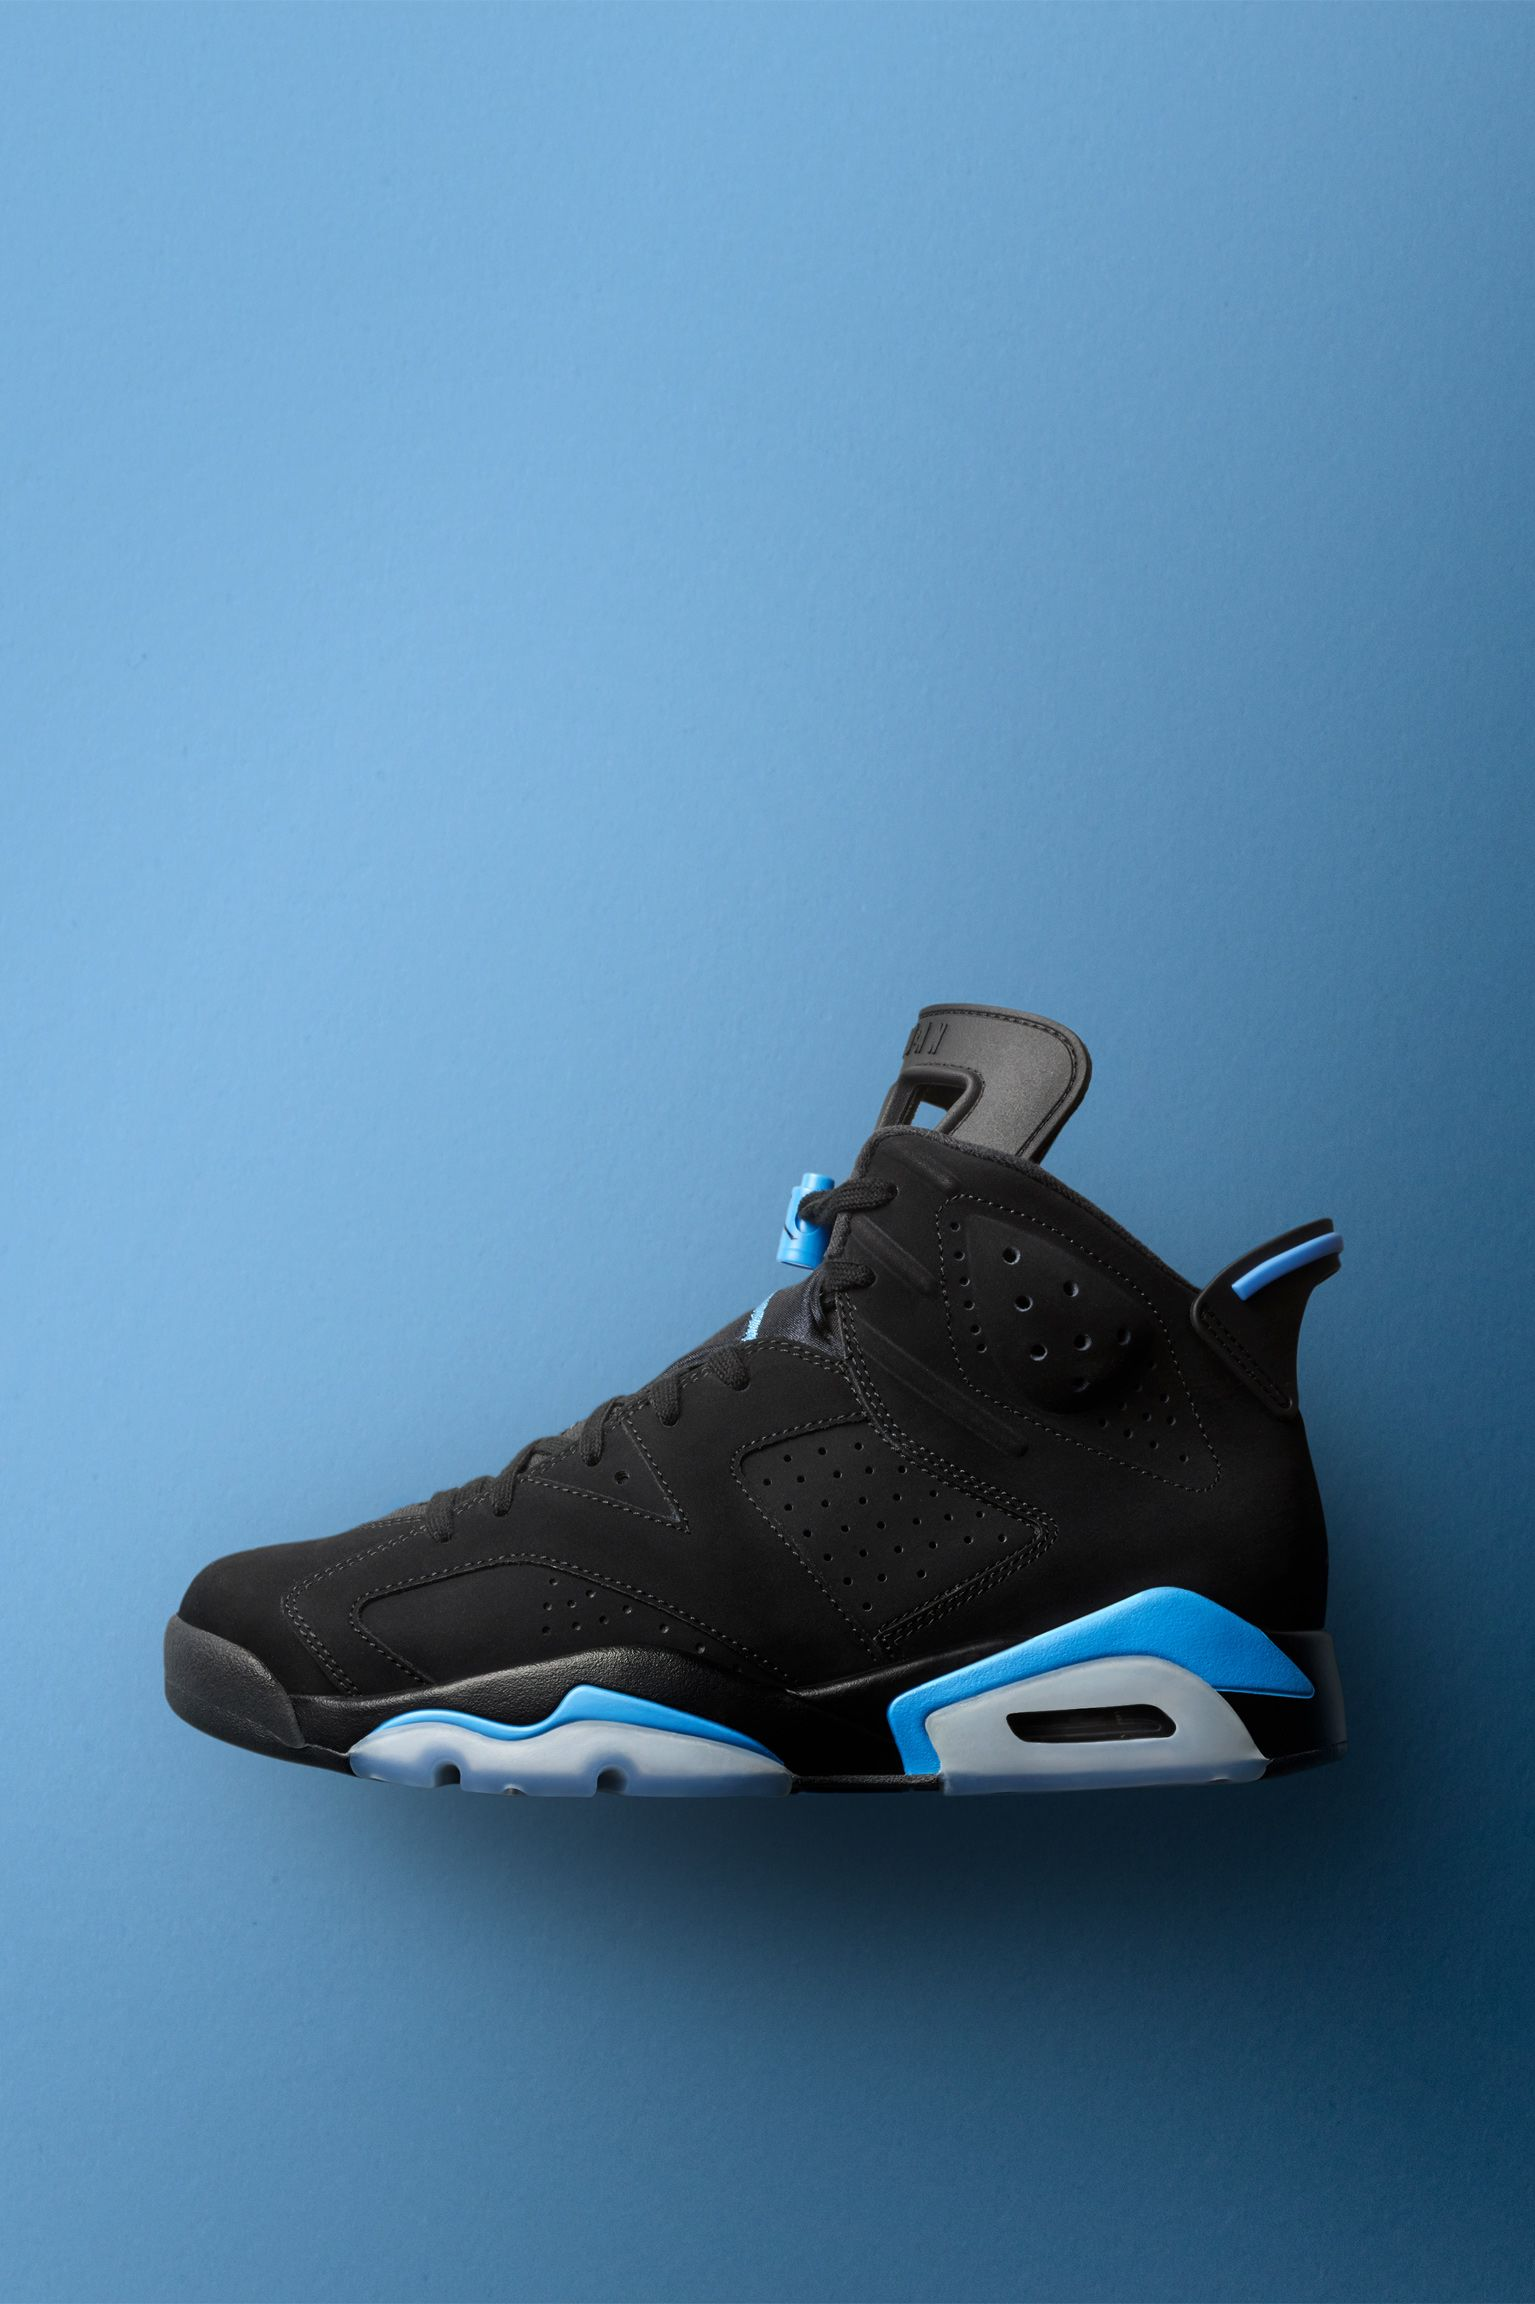 Air Jordan 6 'Black & University Blue' Release Date